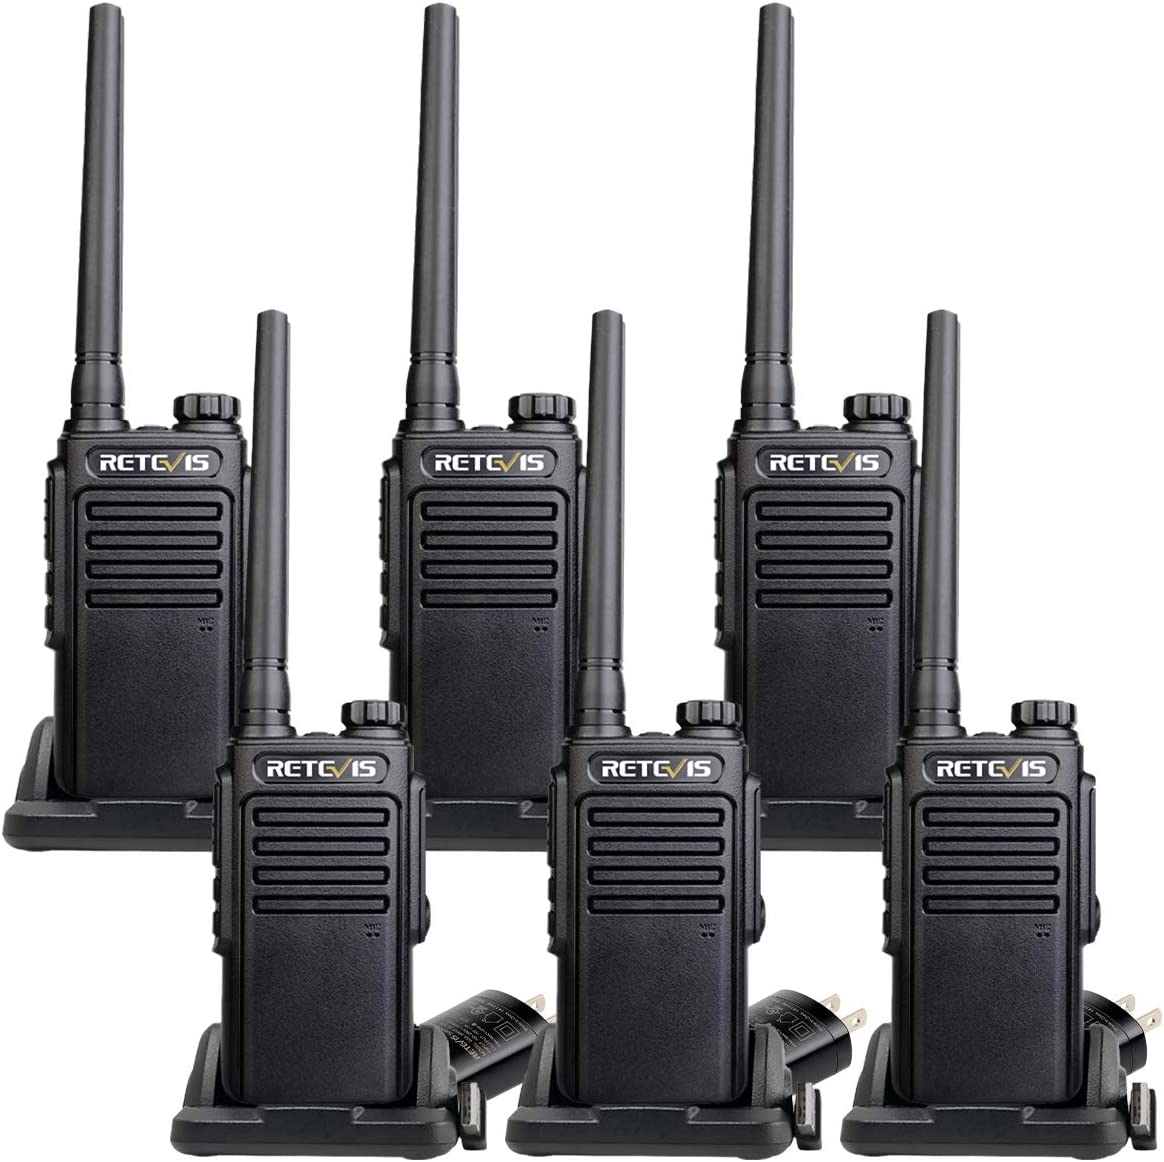 Retevis RT47 2 Way Radios Waterproof Radio VOX Handsfree Scan Channel Lock Walkie-Talkies for Adults Business 6 Pack